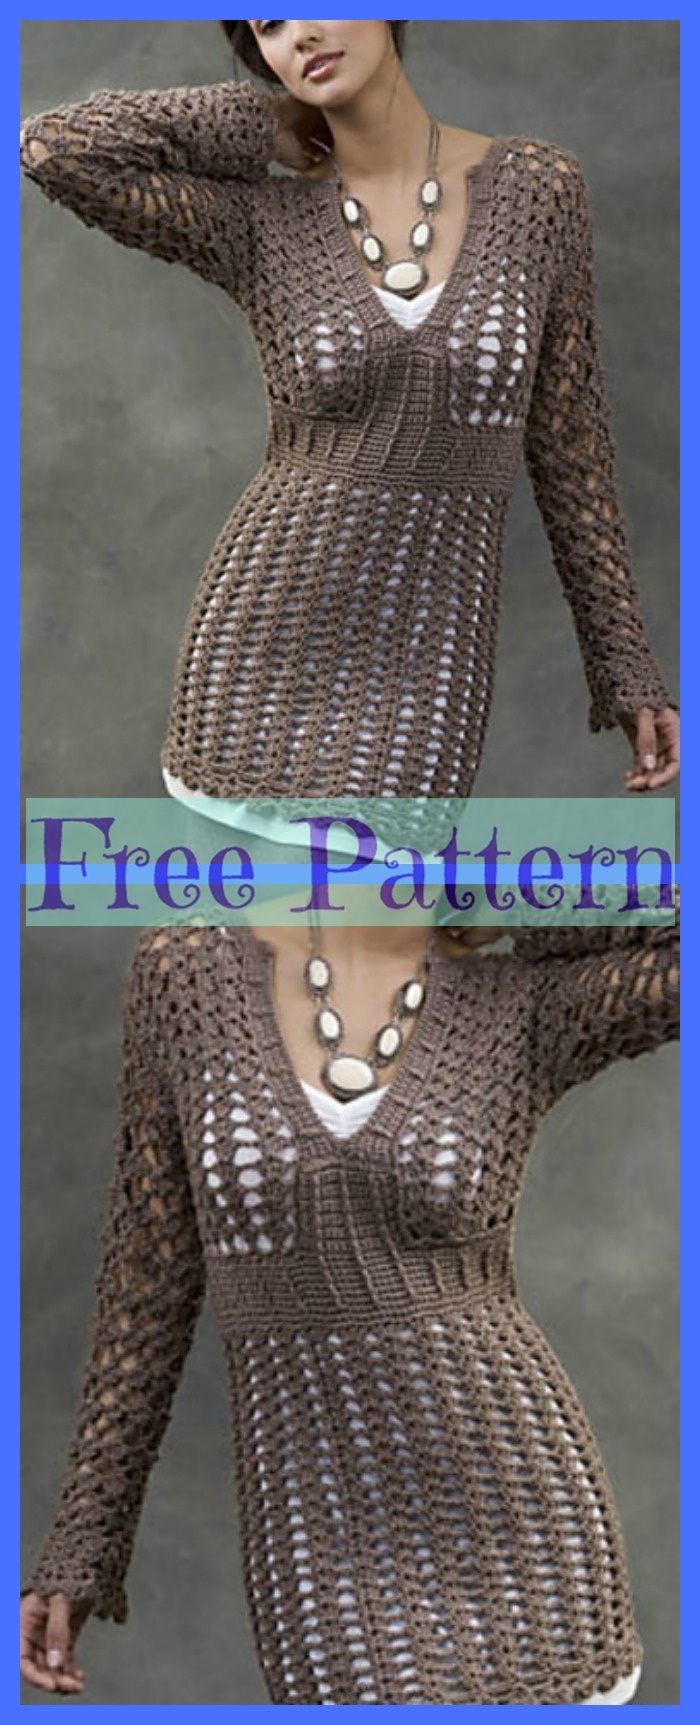 diy4ever-Pretty Crochet Sweaters - Free Patterns P1